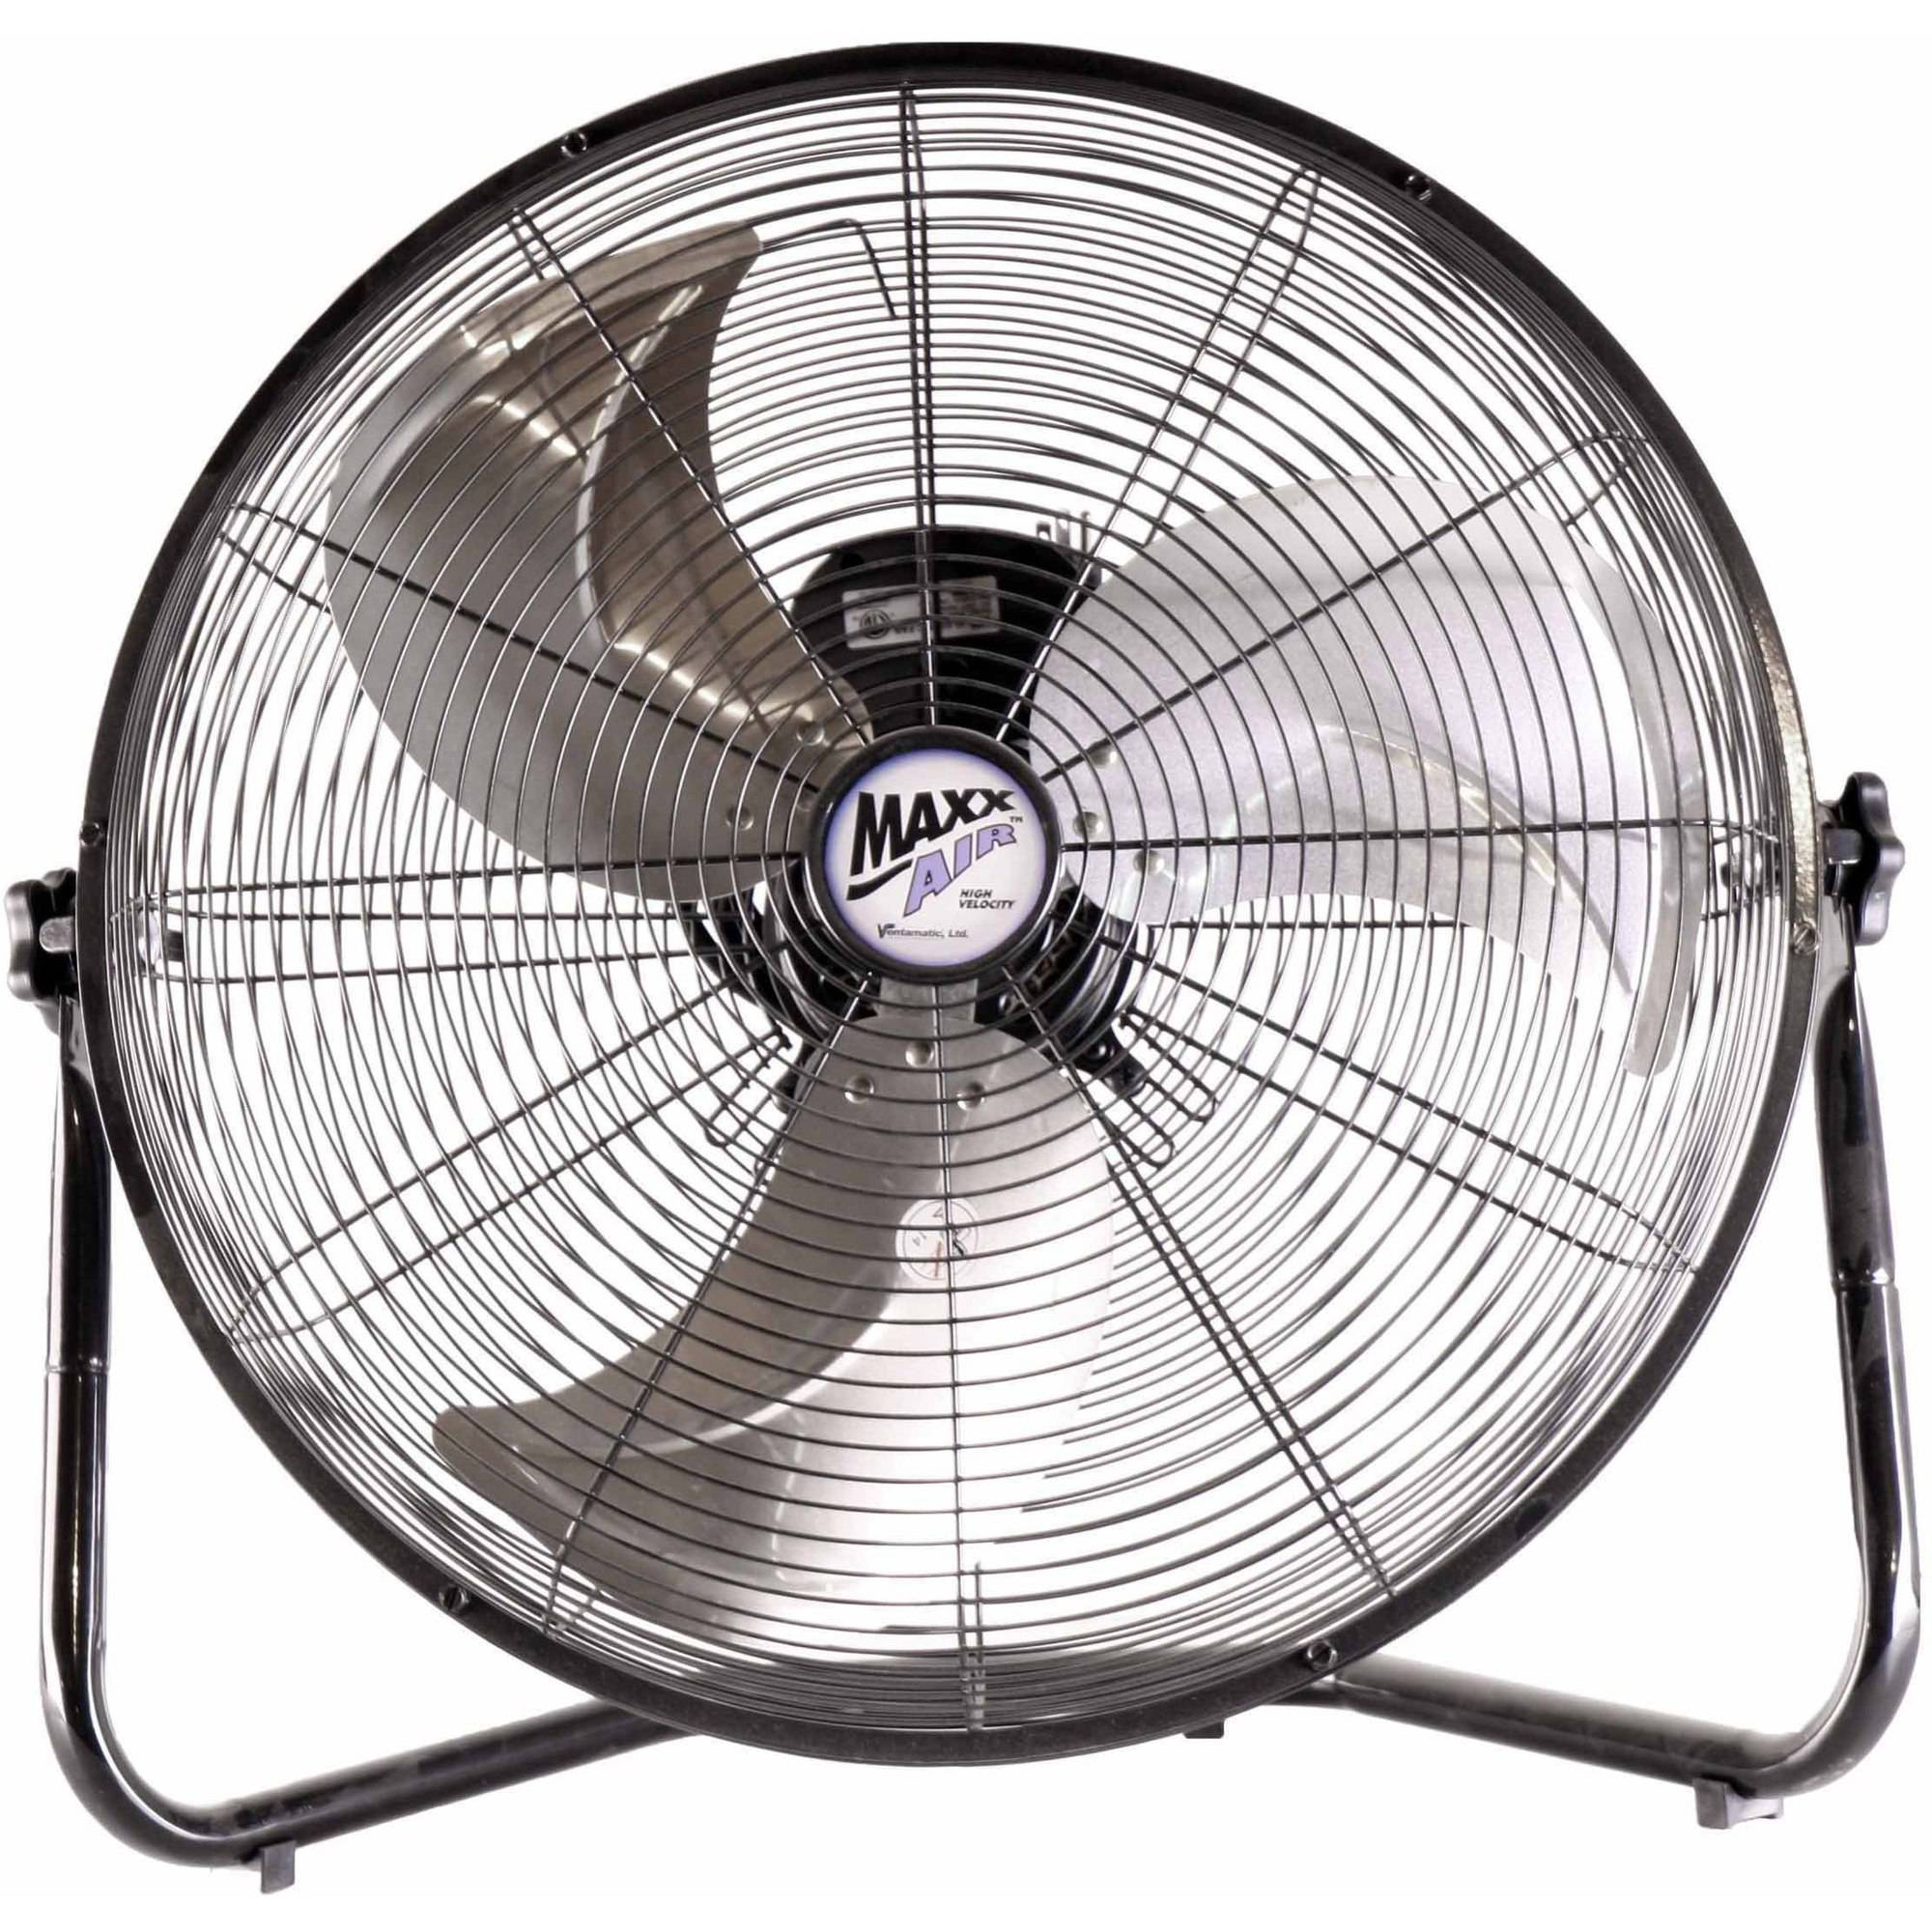 "MaxxAir 20"" High Velocity Floor Fan by Ventamatic, Ltd."